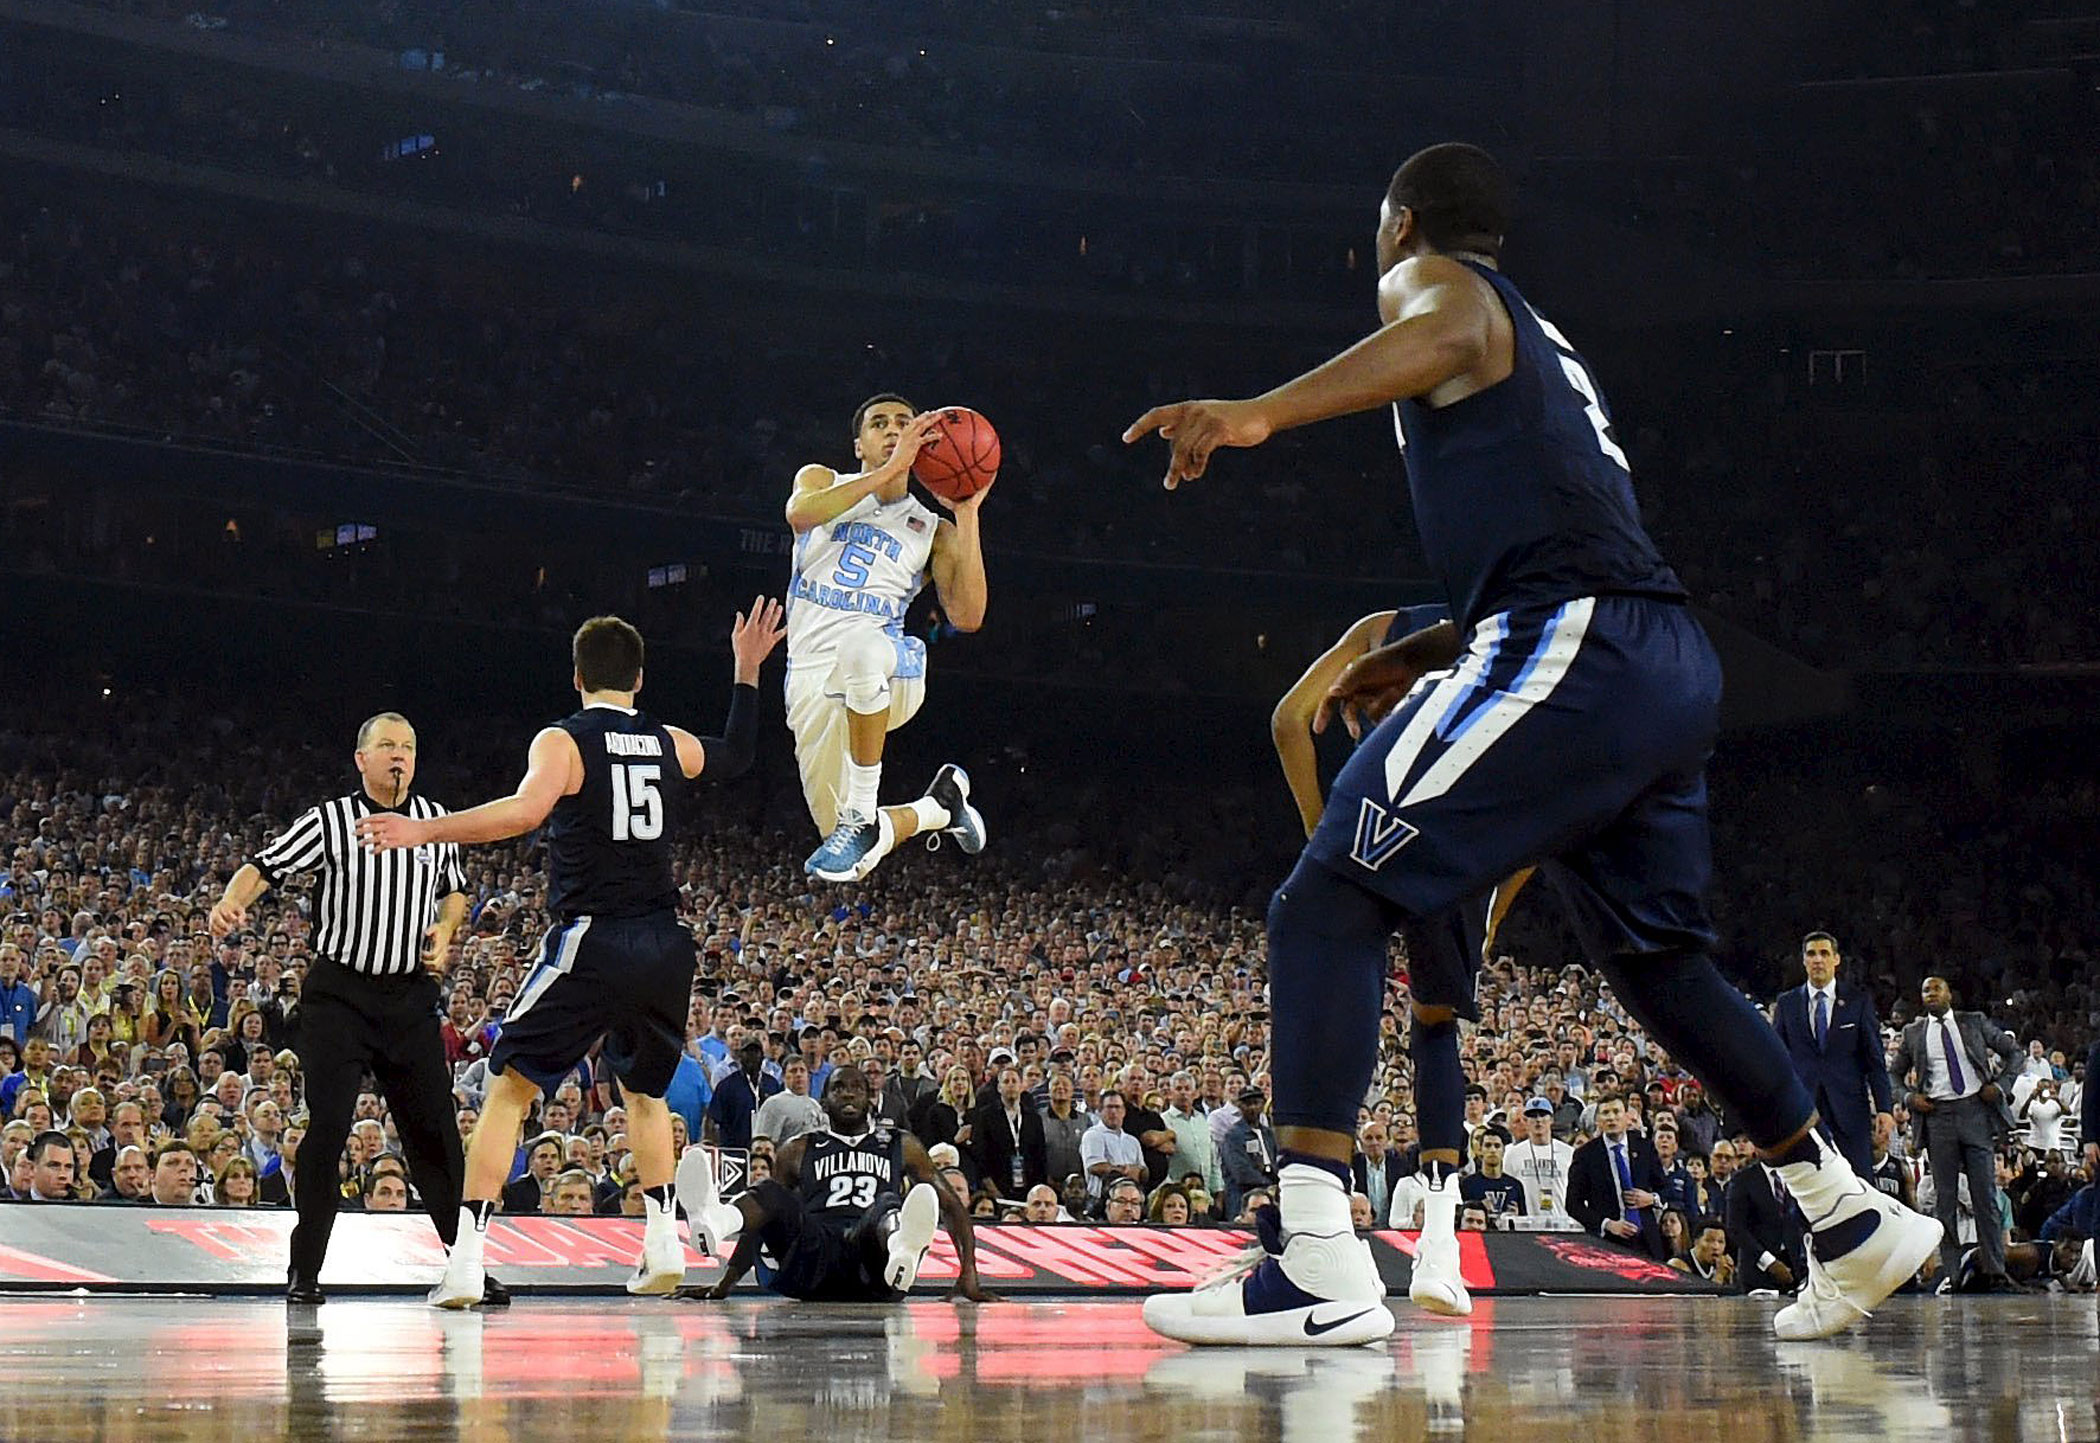 North Carolina Tar Heels guard Marcus Paige (5) shoots and scores a three-point basket against the Villanova Wildcats in the second half of the NCAA college basketball National Championship  game on April 4, 2016 in Houston.